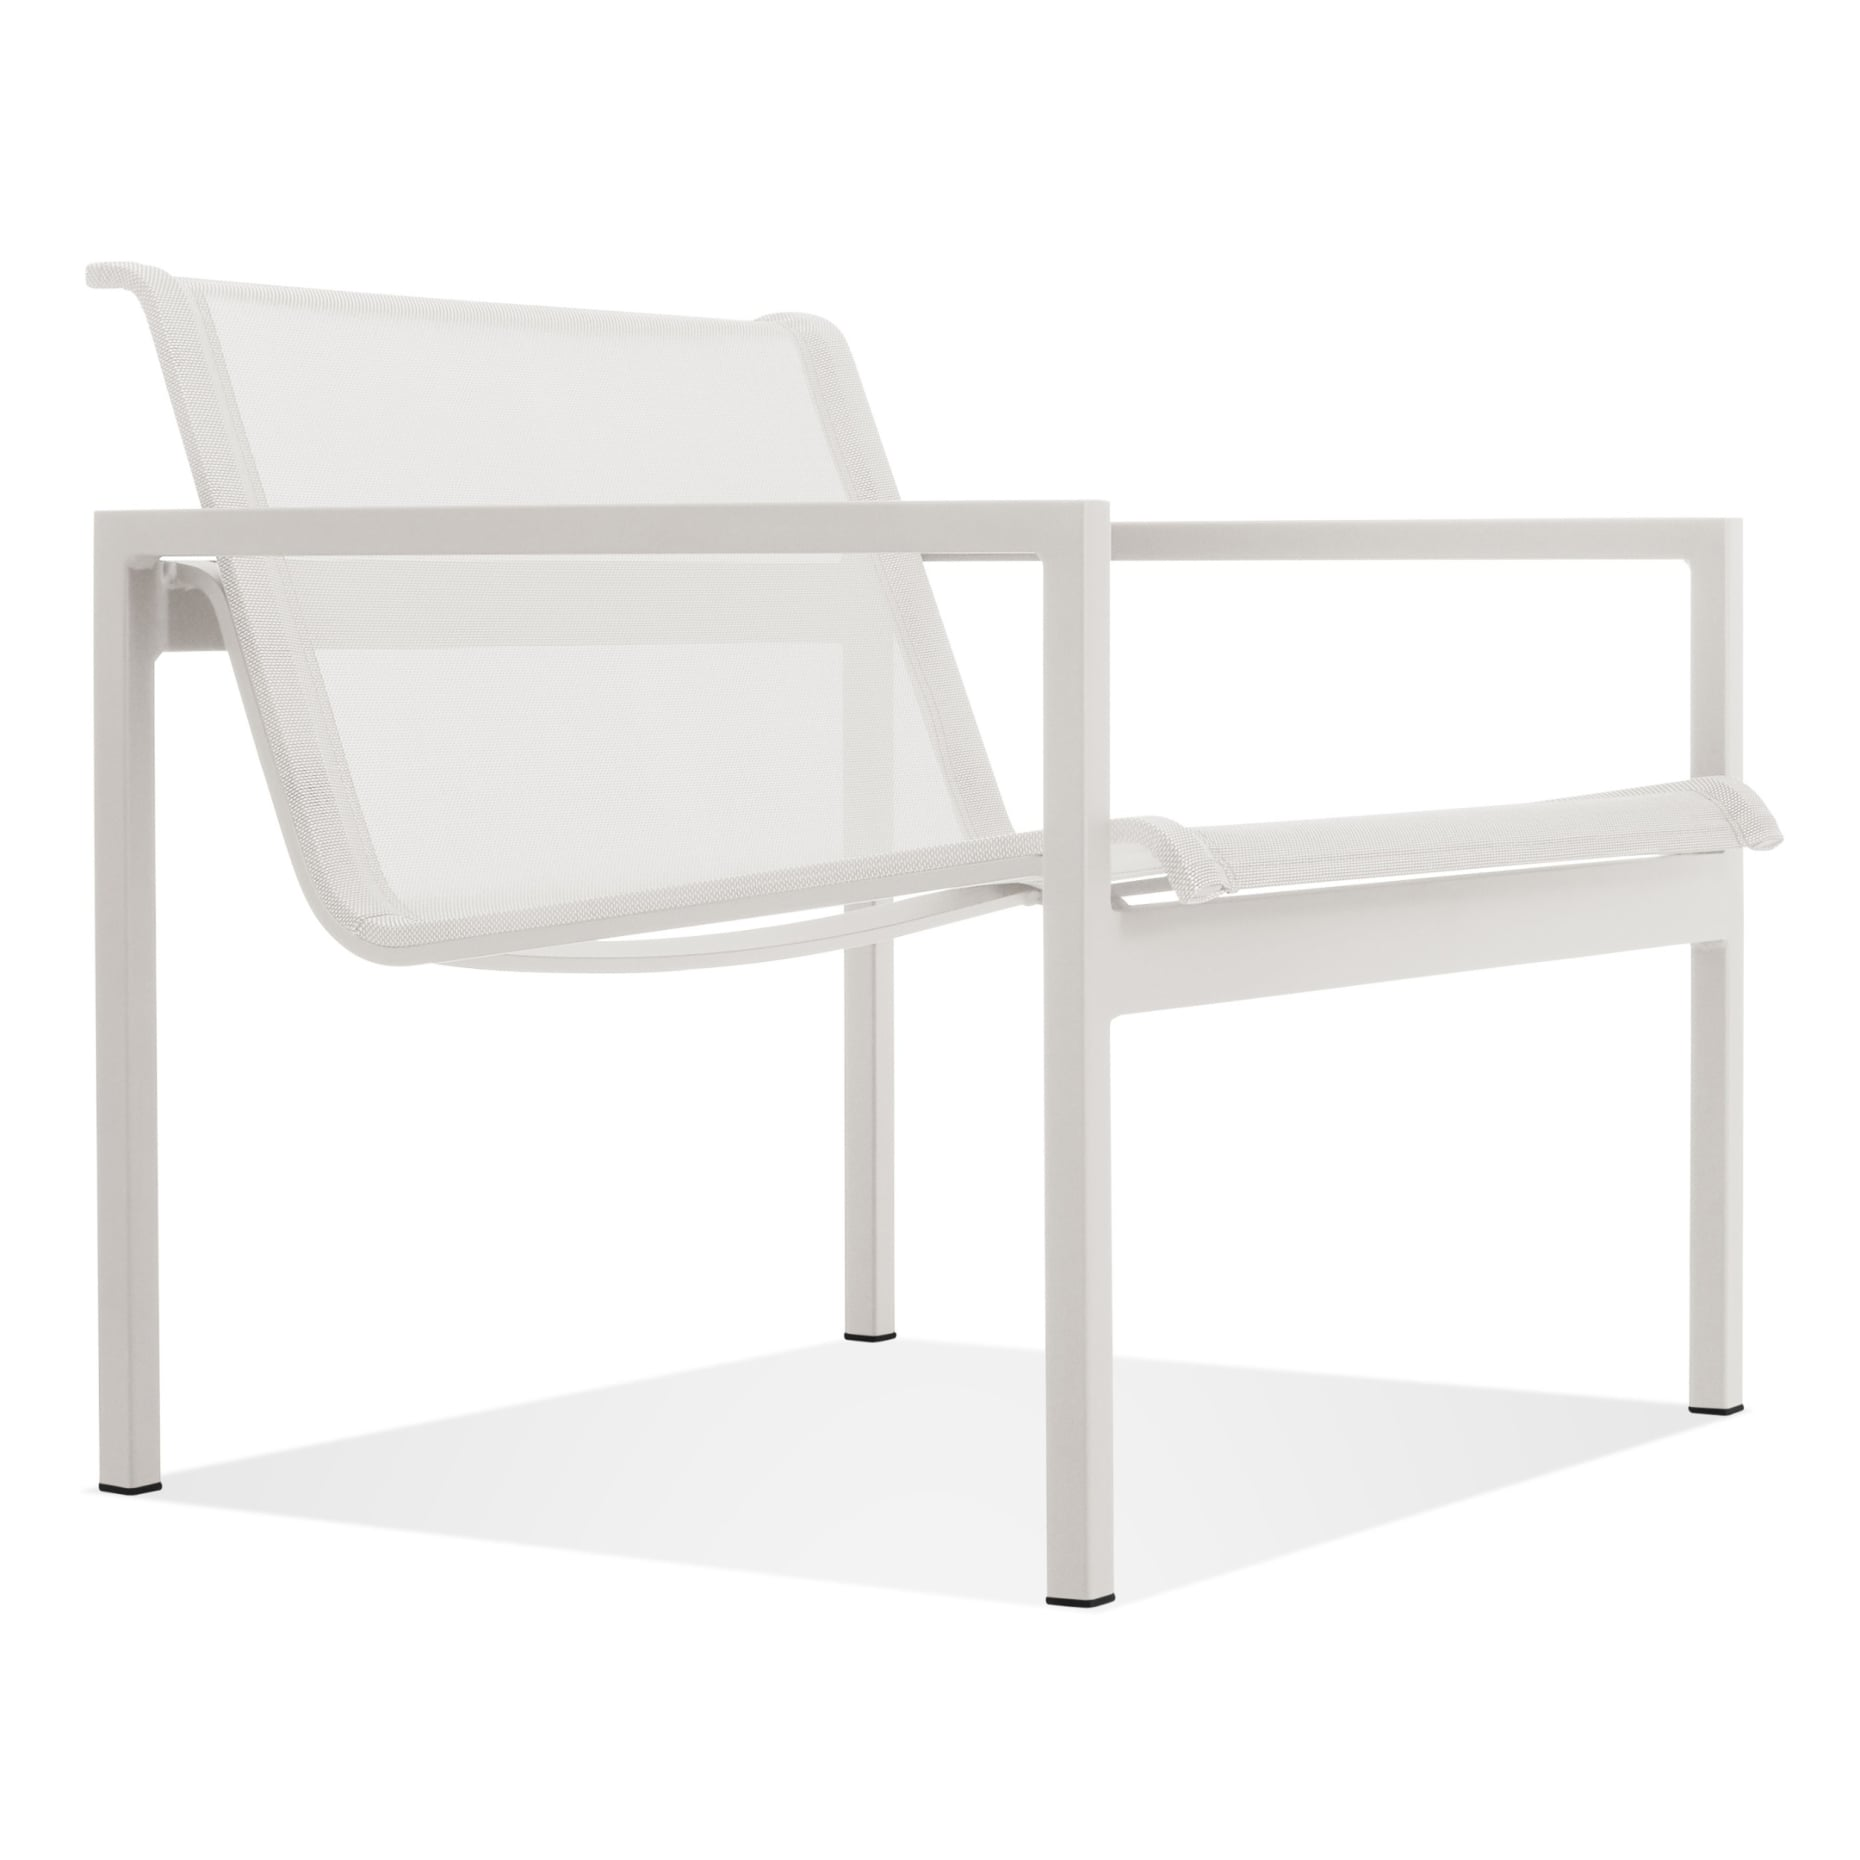 sk1 lngchr wh 34 skiff lounge chair white